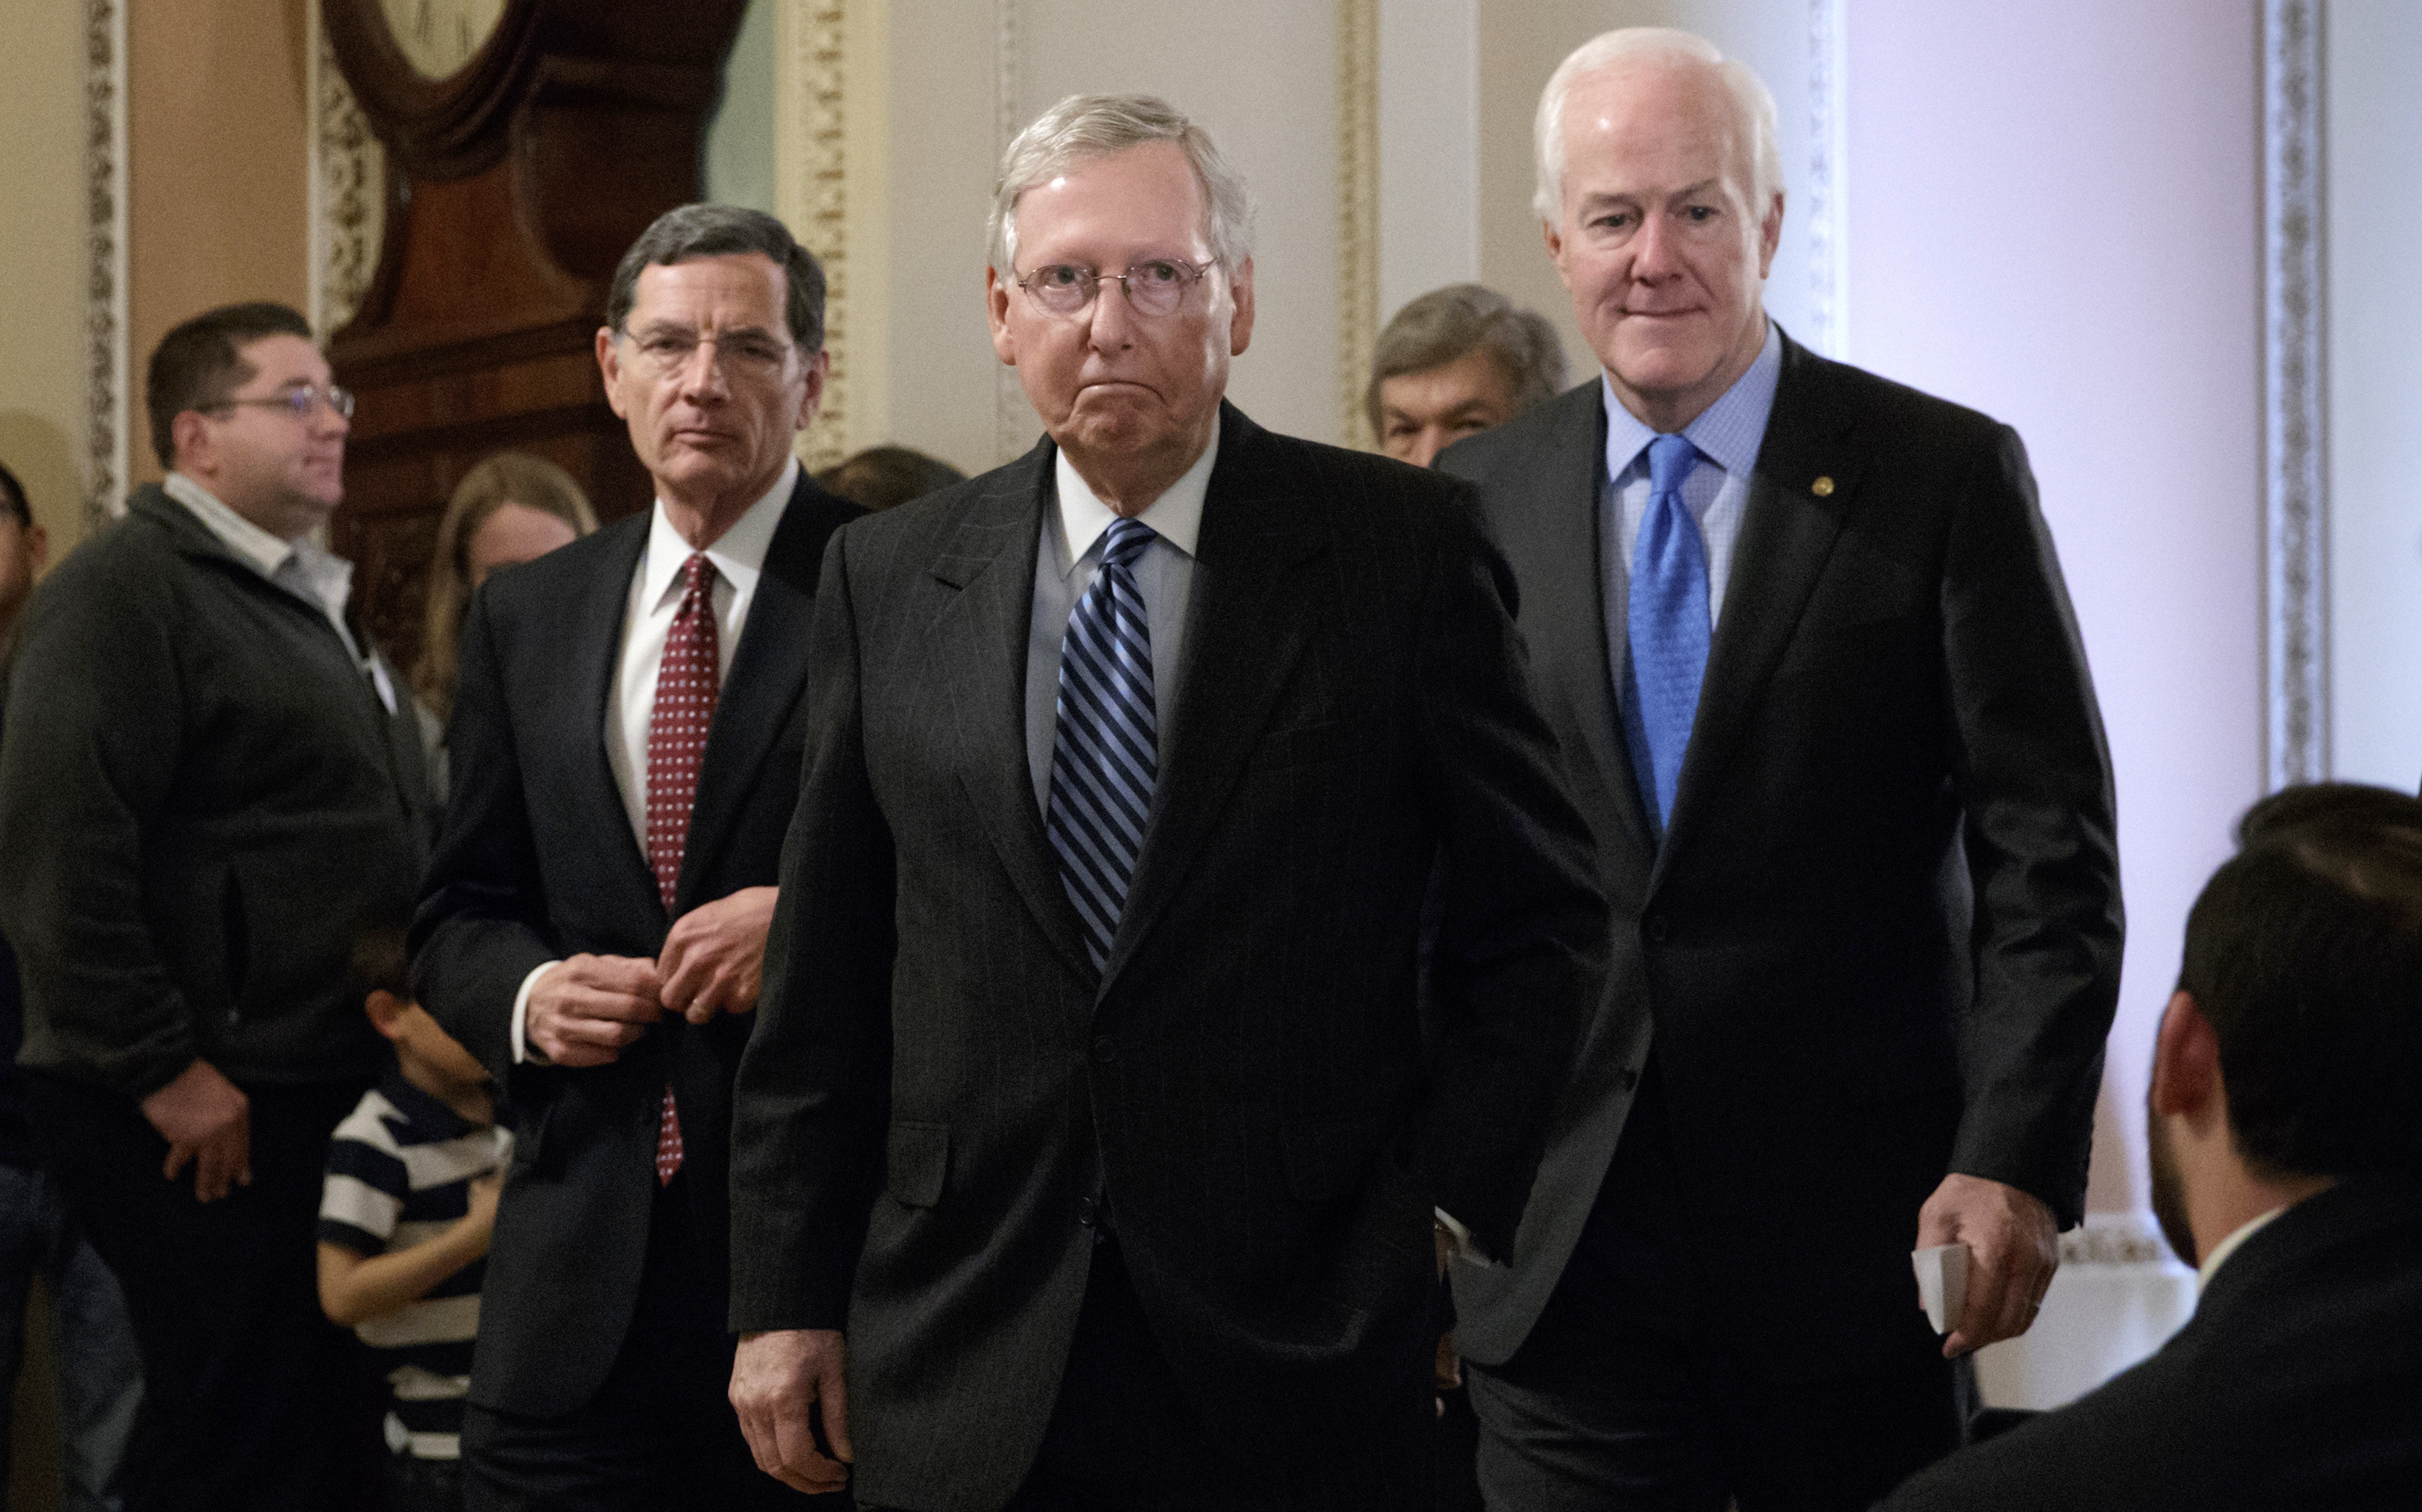 Senate Majority Leader Mitch McConnell, R-Ky., flanked by Sen. John Barrasso, R-Wyo., left, and Majority Whip John Cornyn, R-Texas, arrives to speak with reporters at the Capitol in Washington, Tuesday, March, 14, 2017. The White House and Republican leaders in Congress are scrambling to shore up support for their health care bill after findings from the Congressional Budget Office estimated that 14 million people would lose insurance coverage in the first year alone under the GOP replacement for Obamacare. (AP/J. Scott Applewhite)